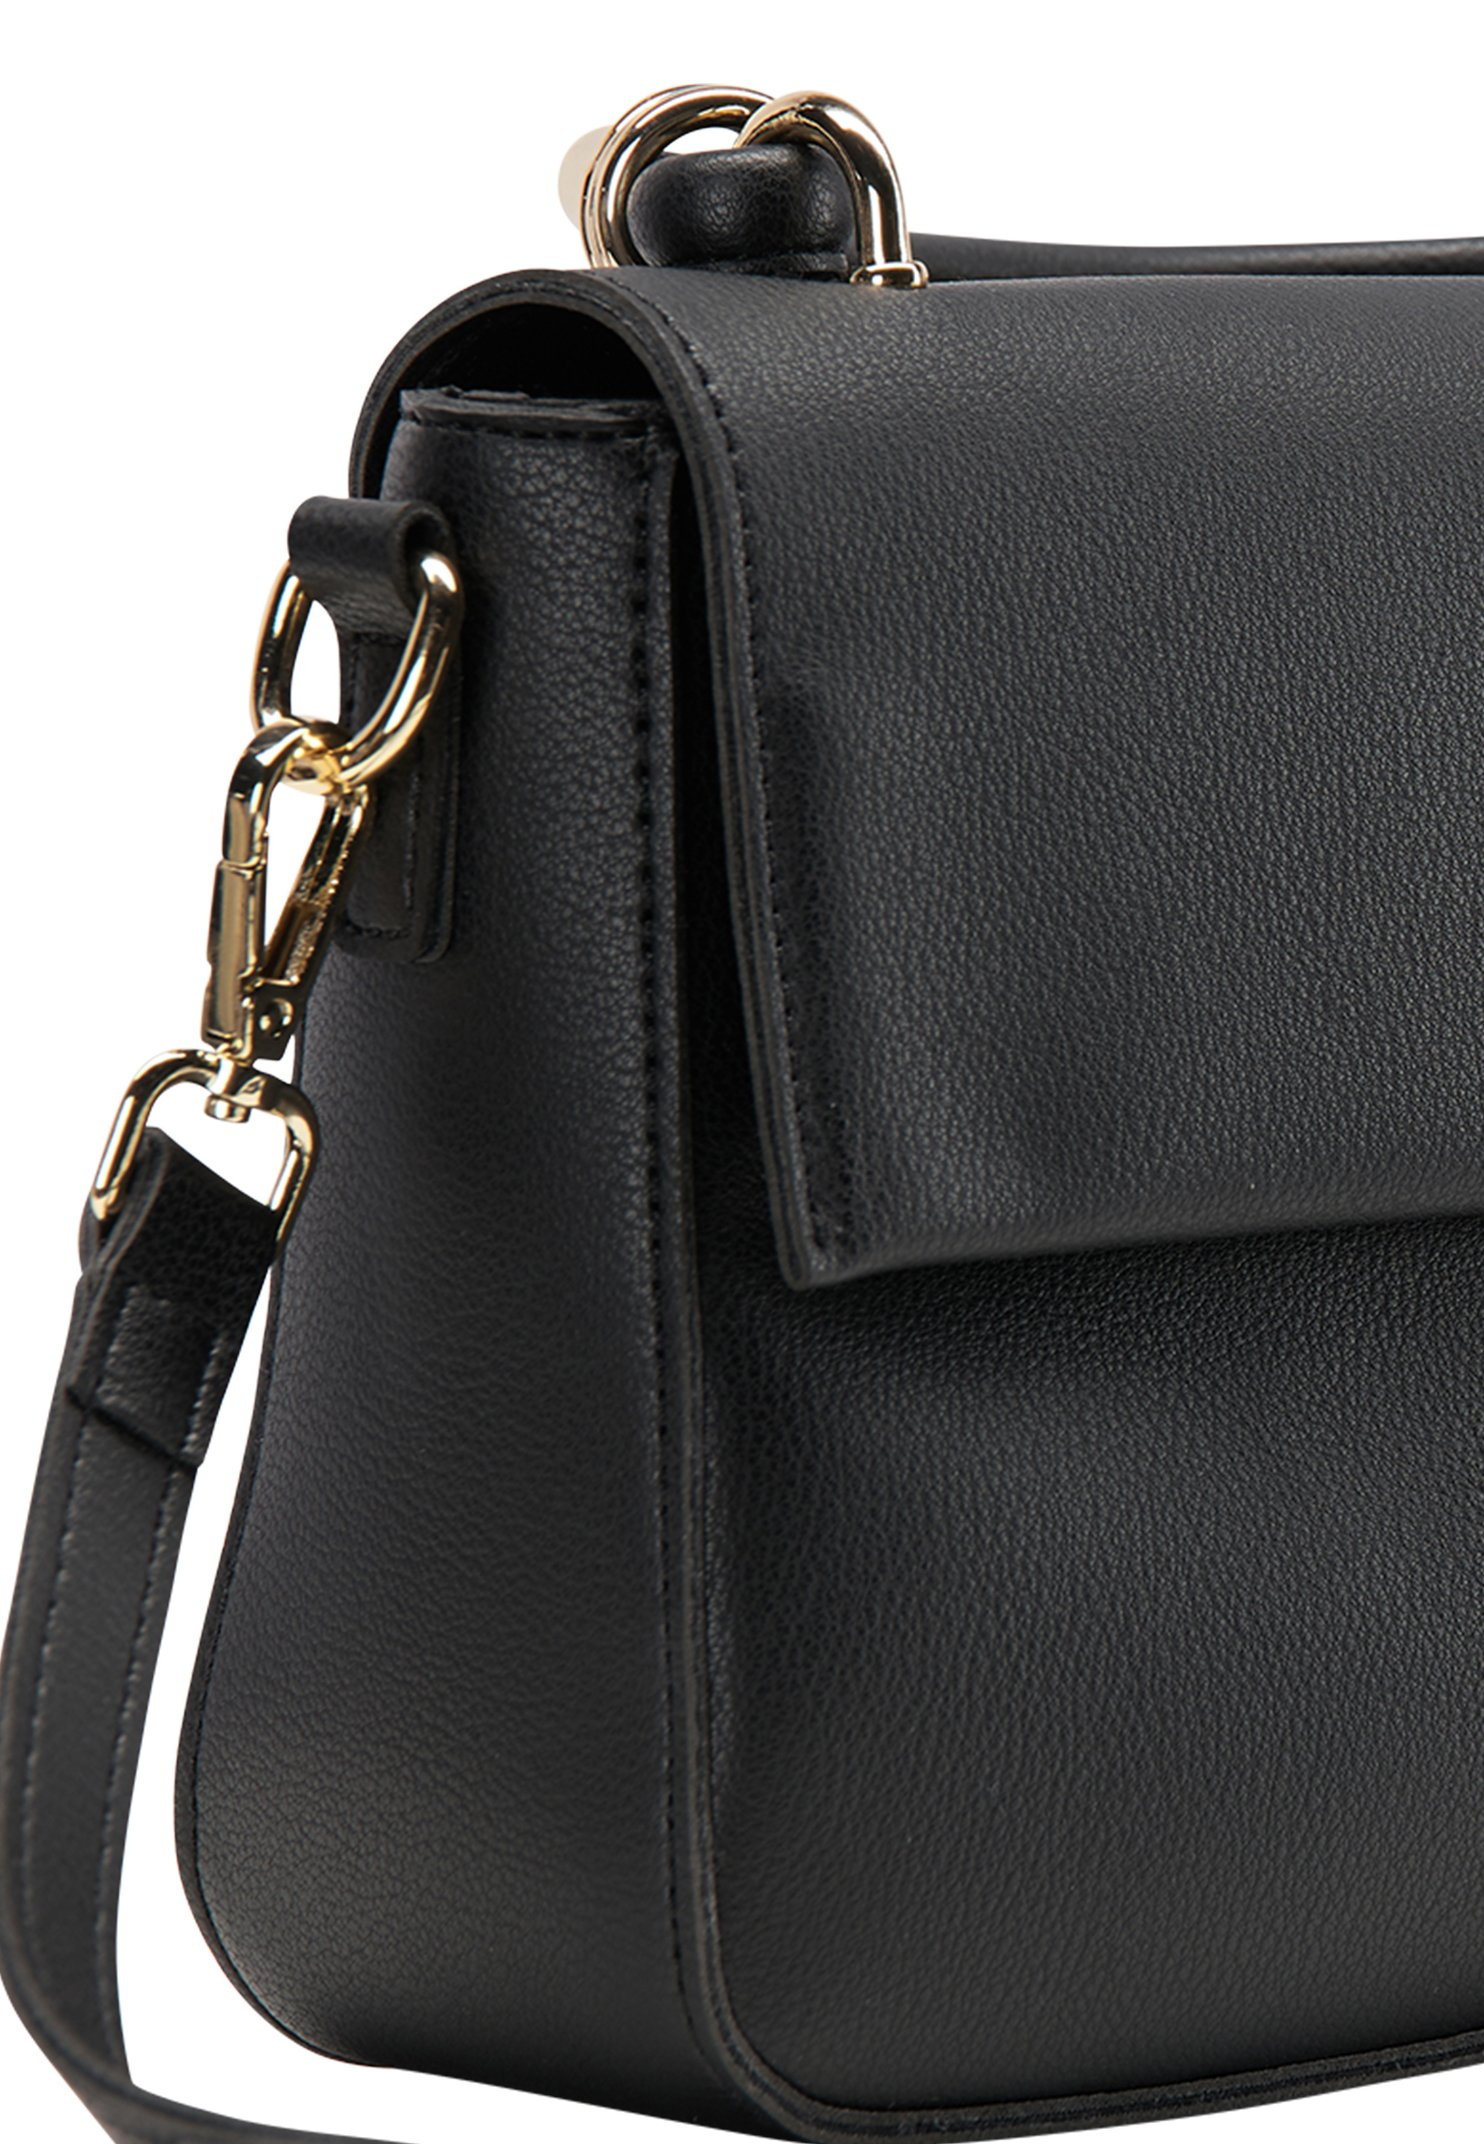 Up To Date Fashionable Accessories usha Handbag black YbDJeFVlq Ys4JdF5h3